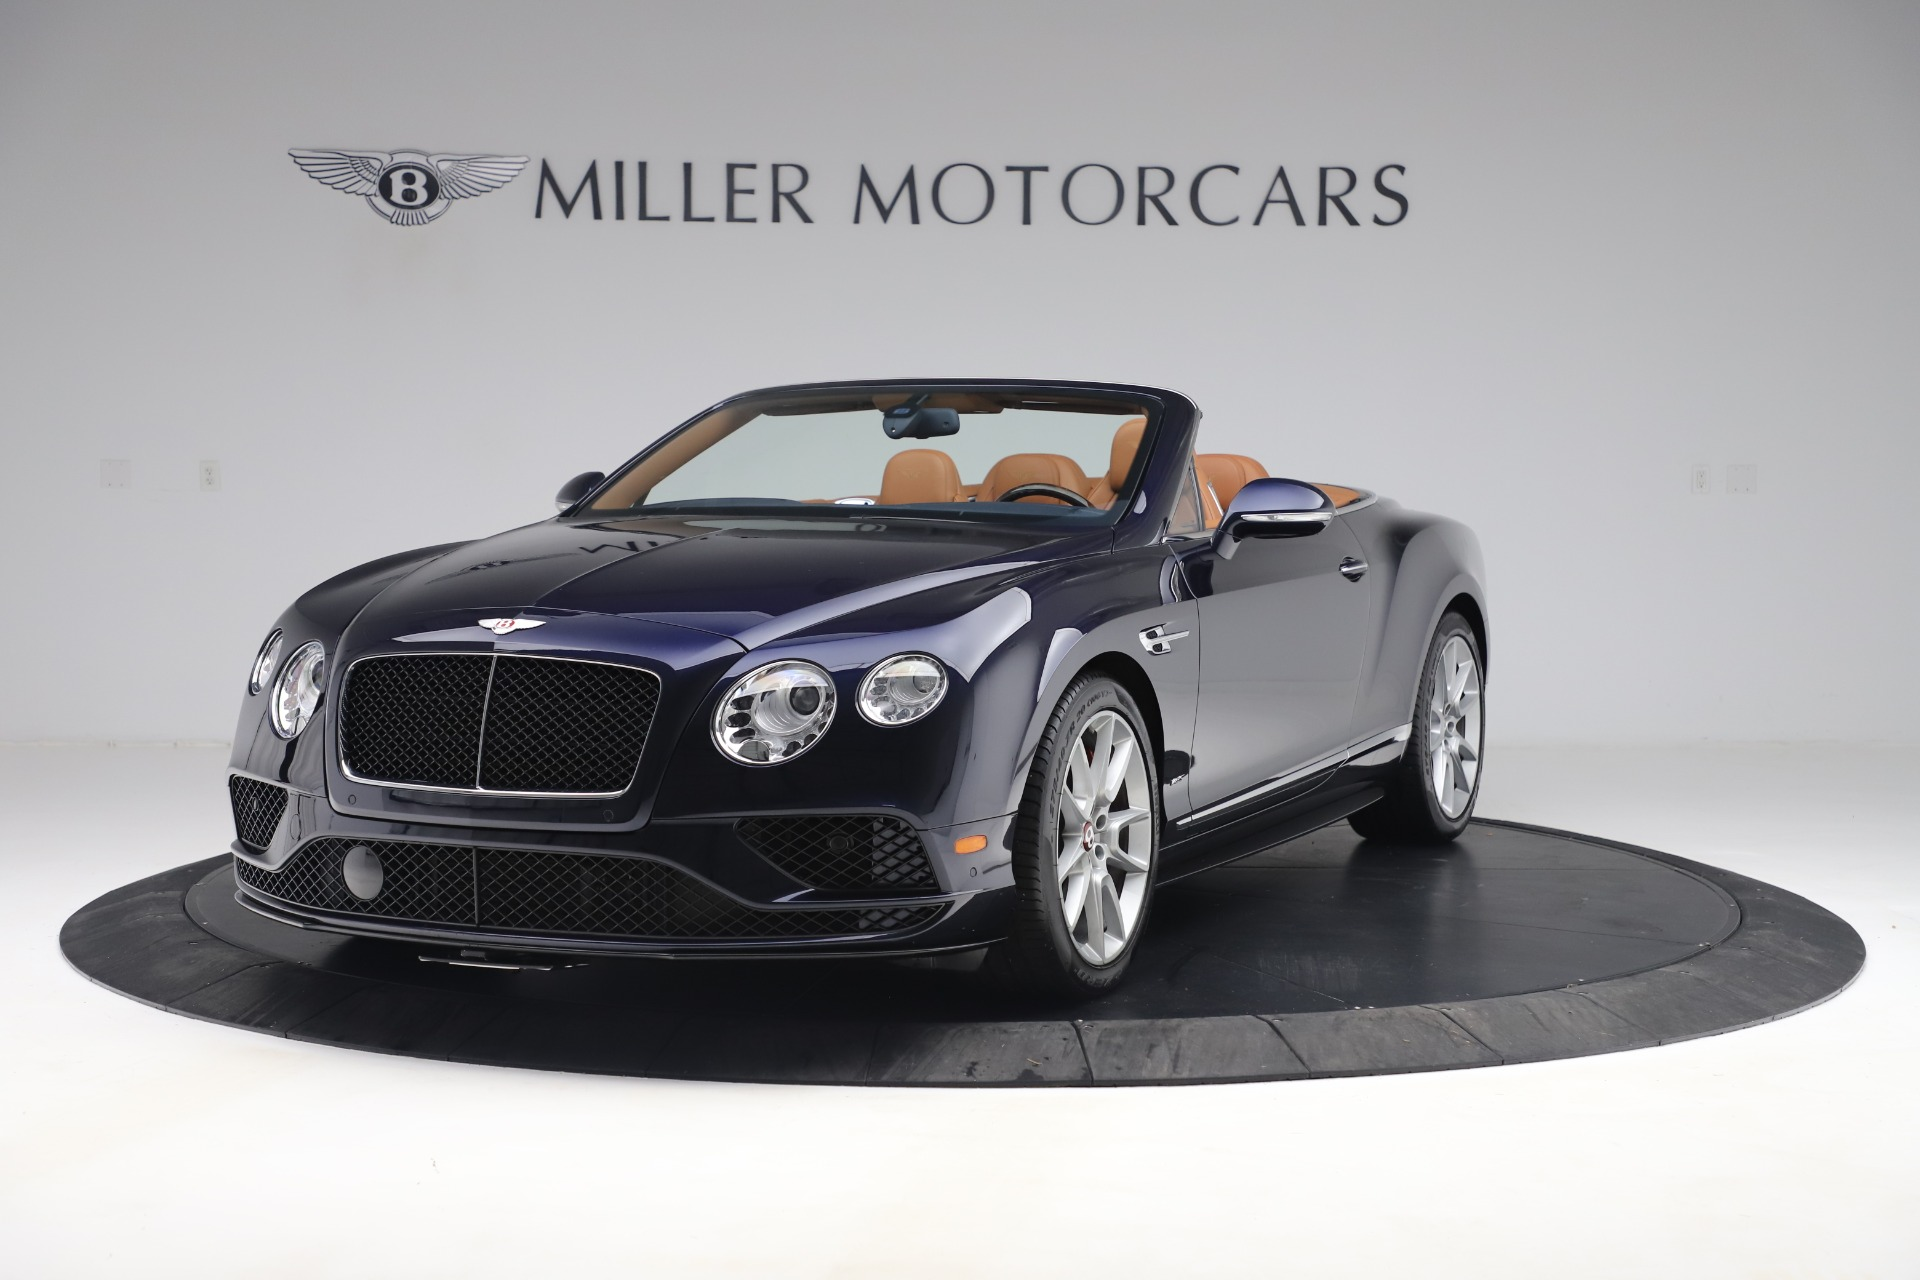 2016 Bentley Continental Gt V8 S Stock 7419 For Sale Near